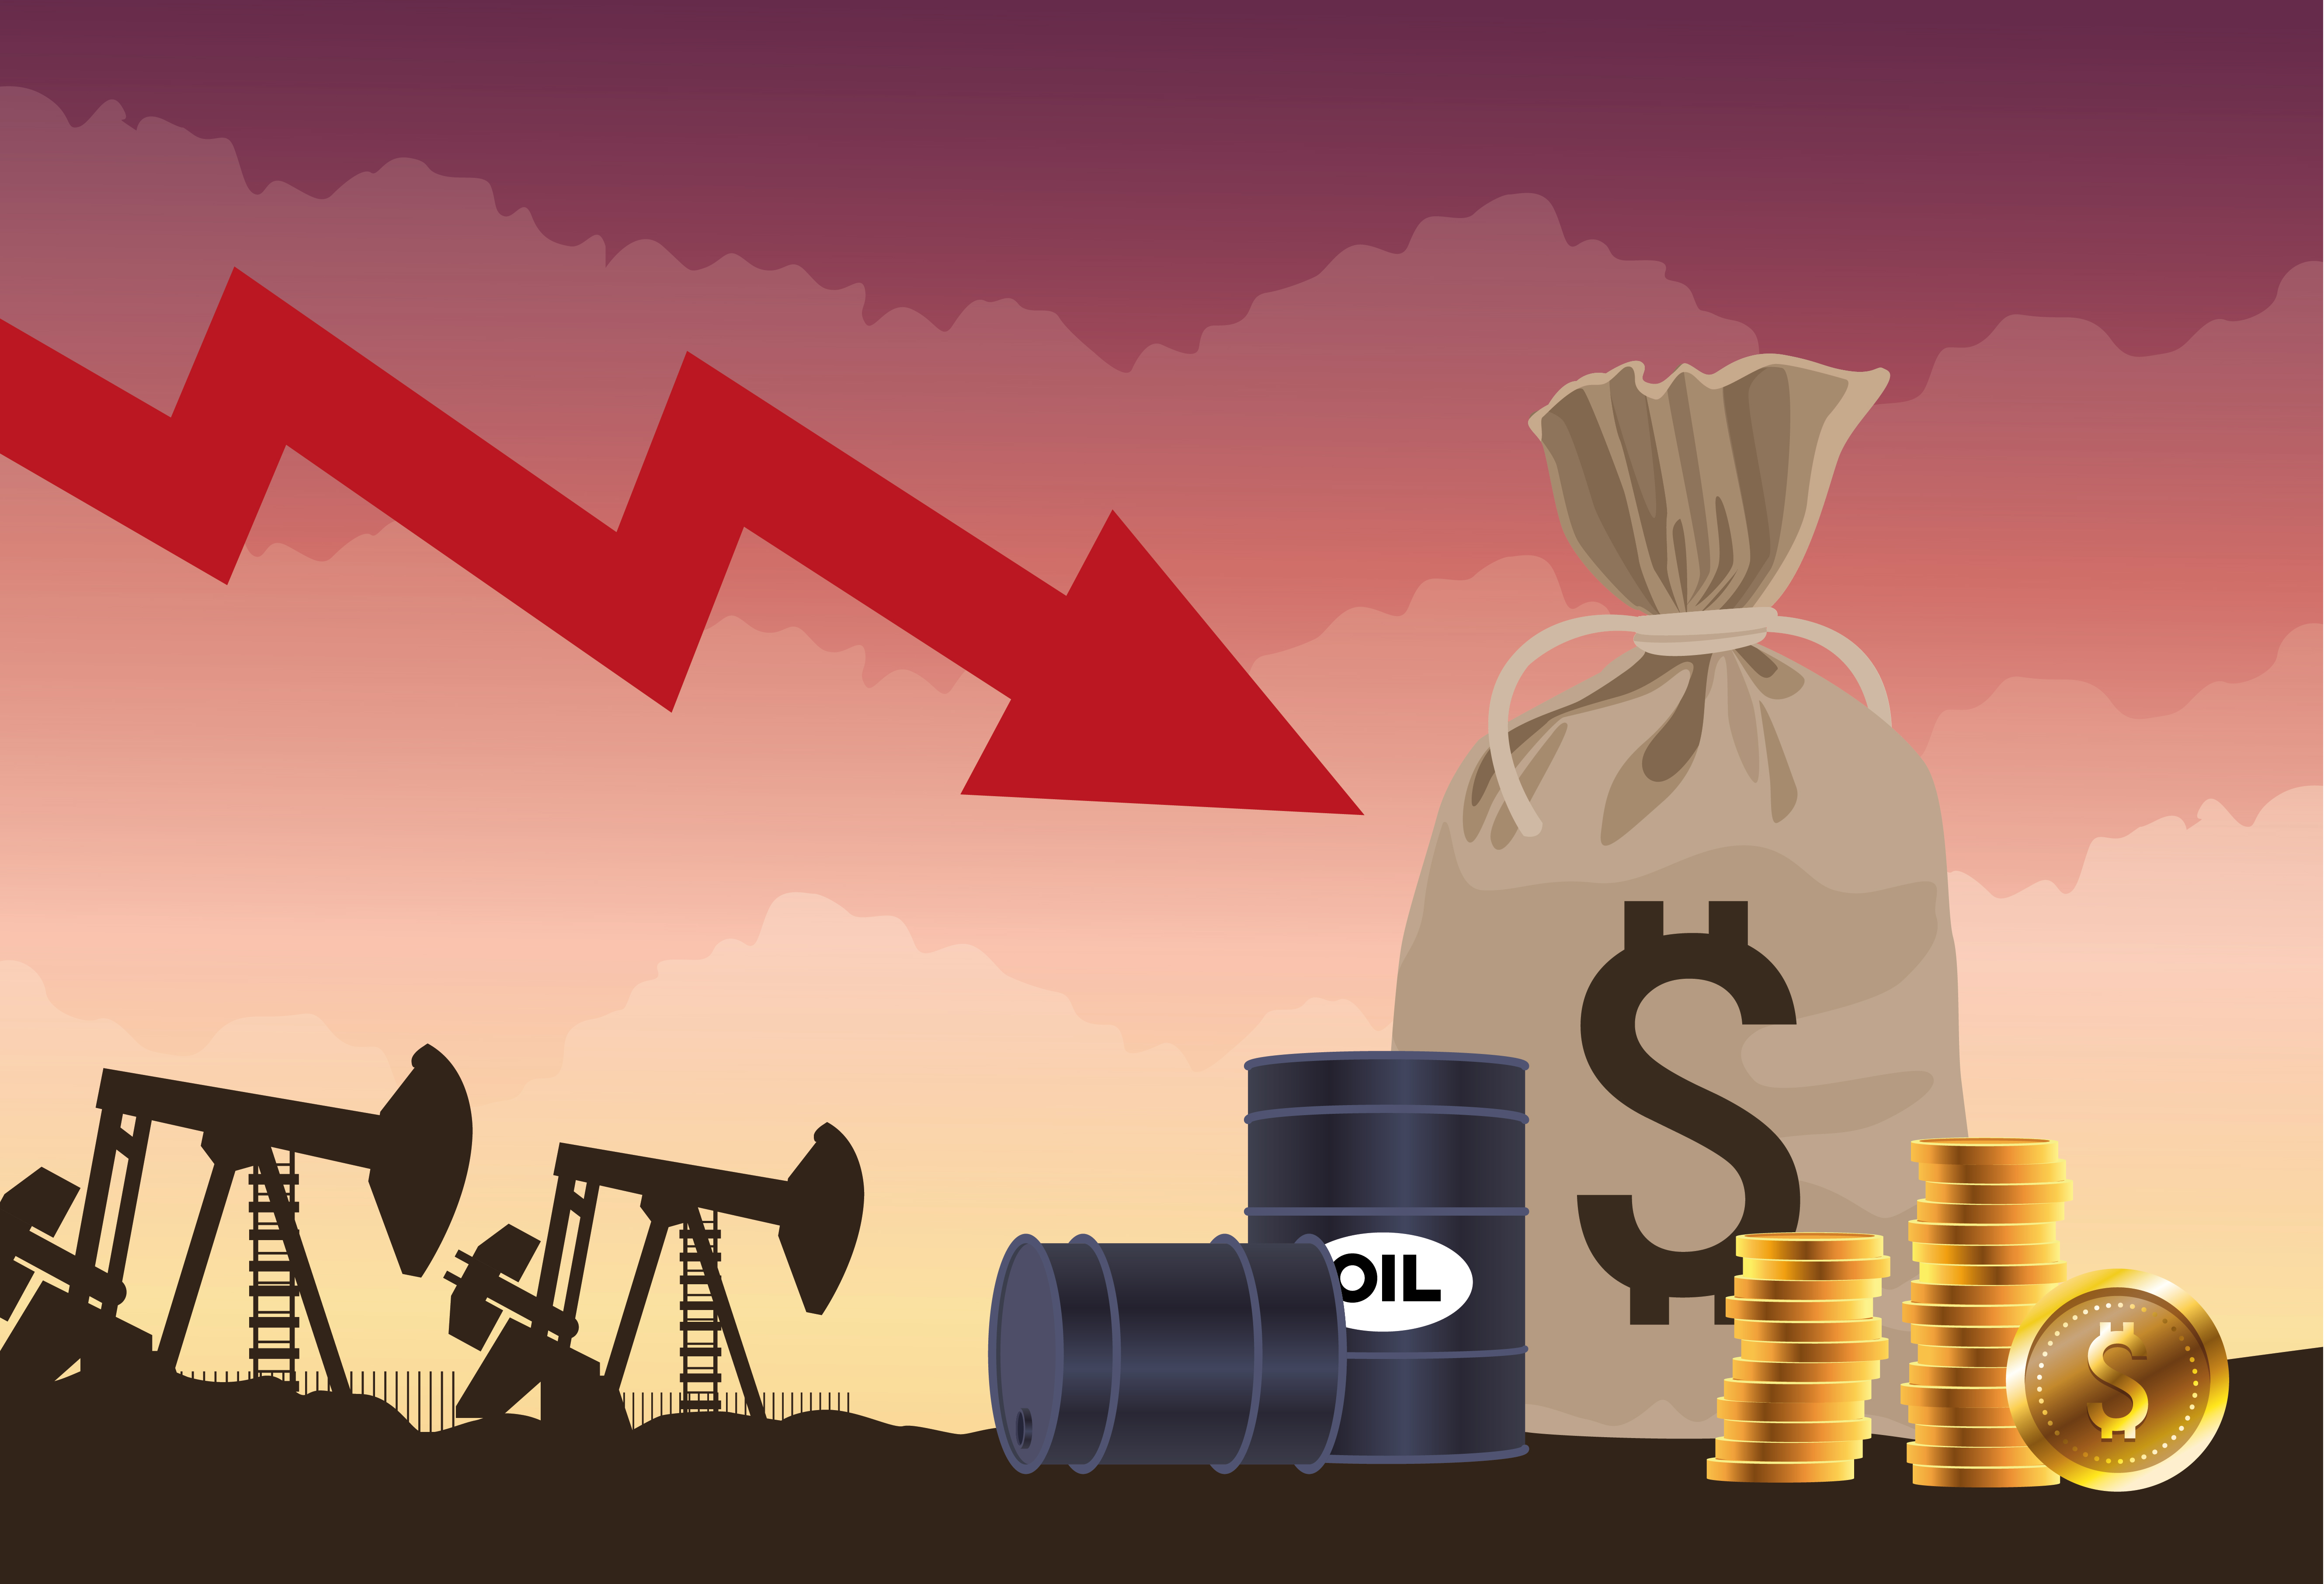 Oil price market with barrels and coins vector